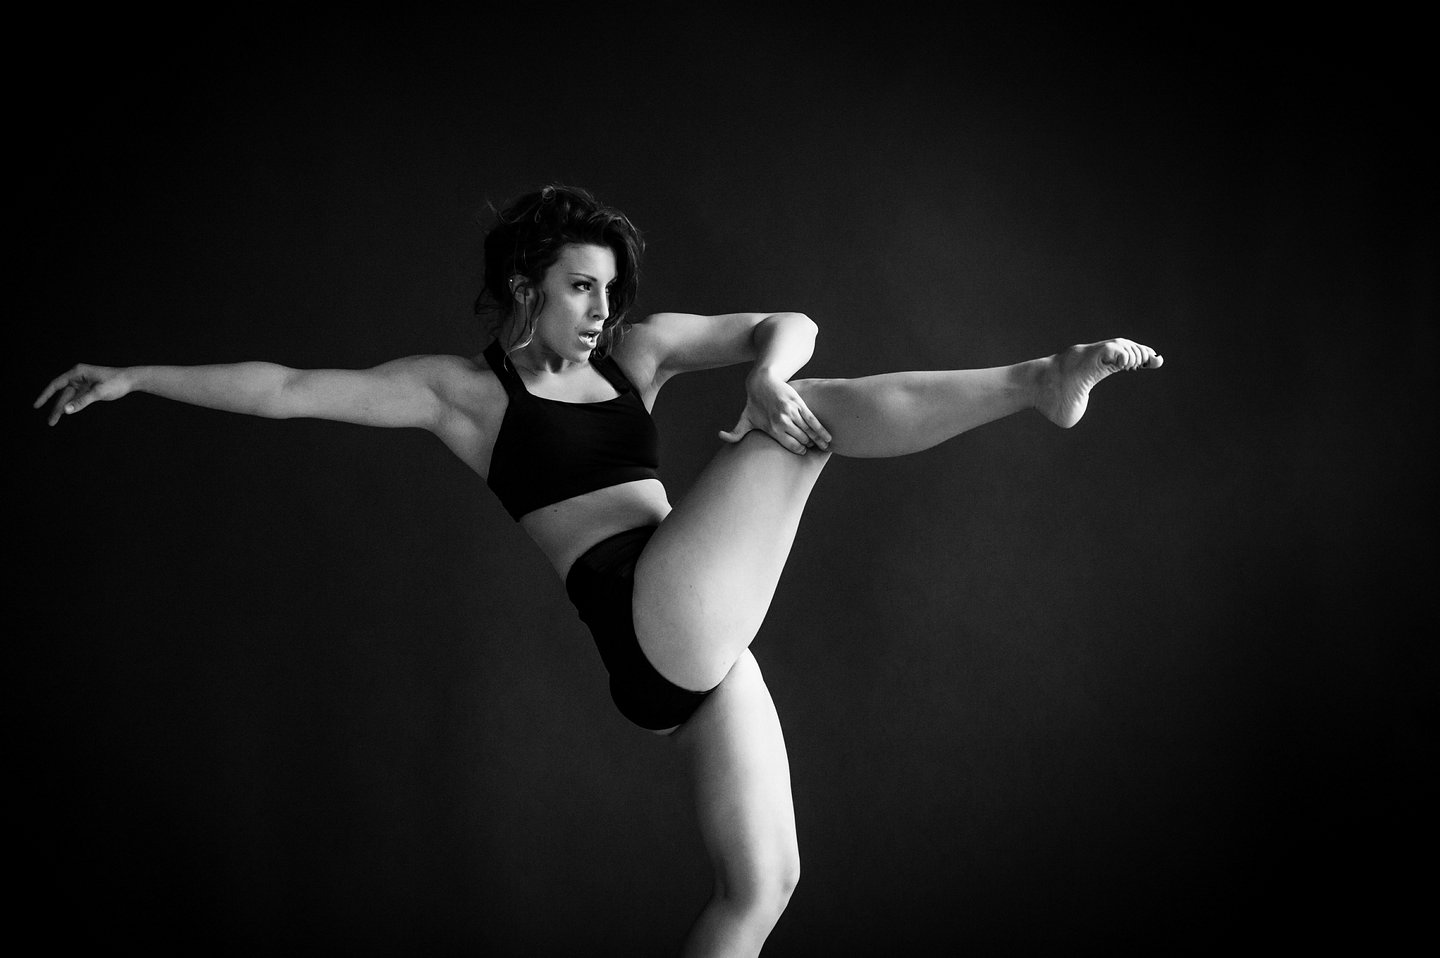 Los Angeles Dance Portrait Photo - Stephanie Abrams - by Tommy Xing Photography 05.jpg